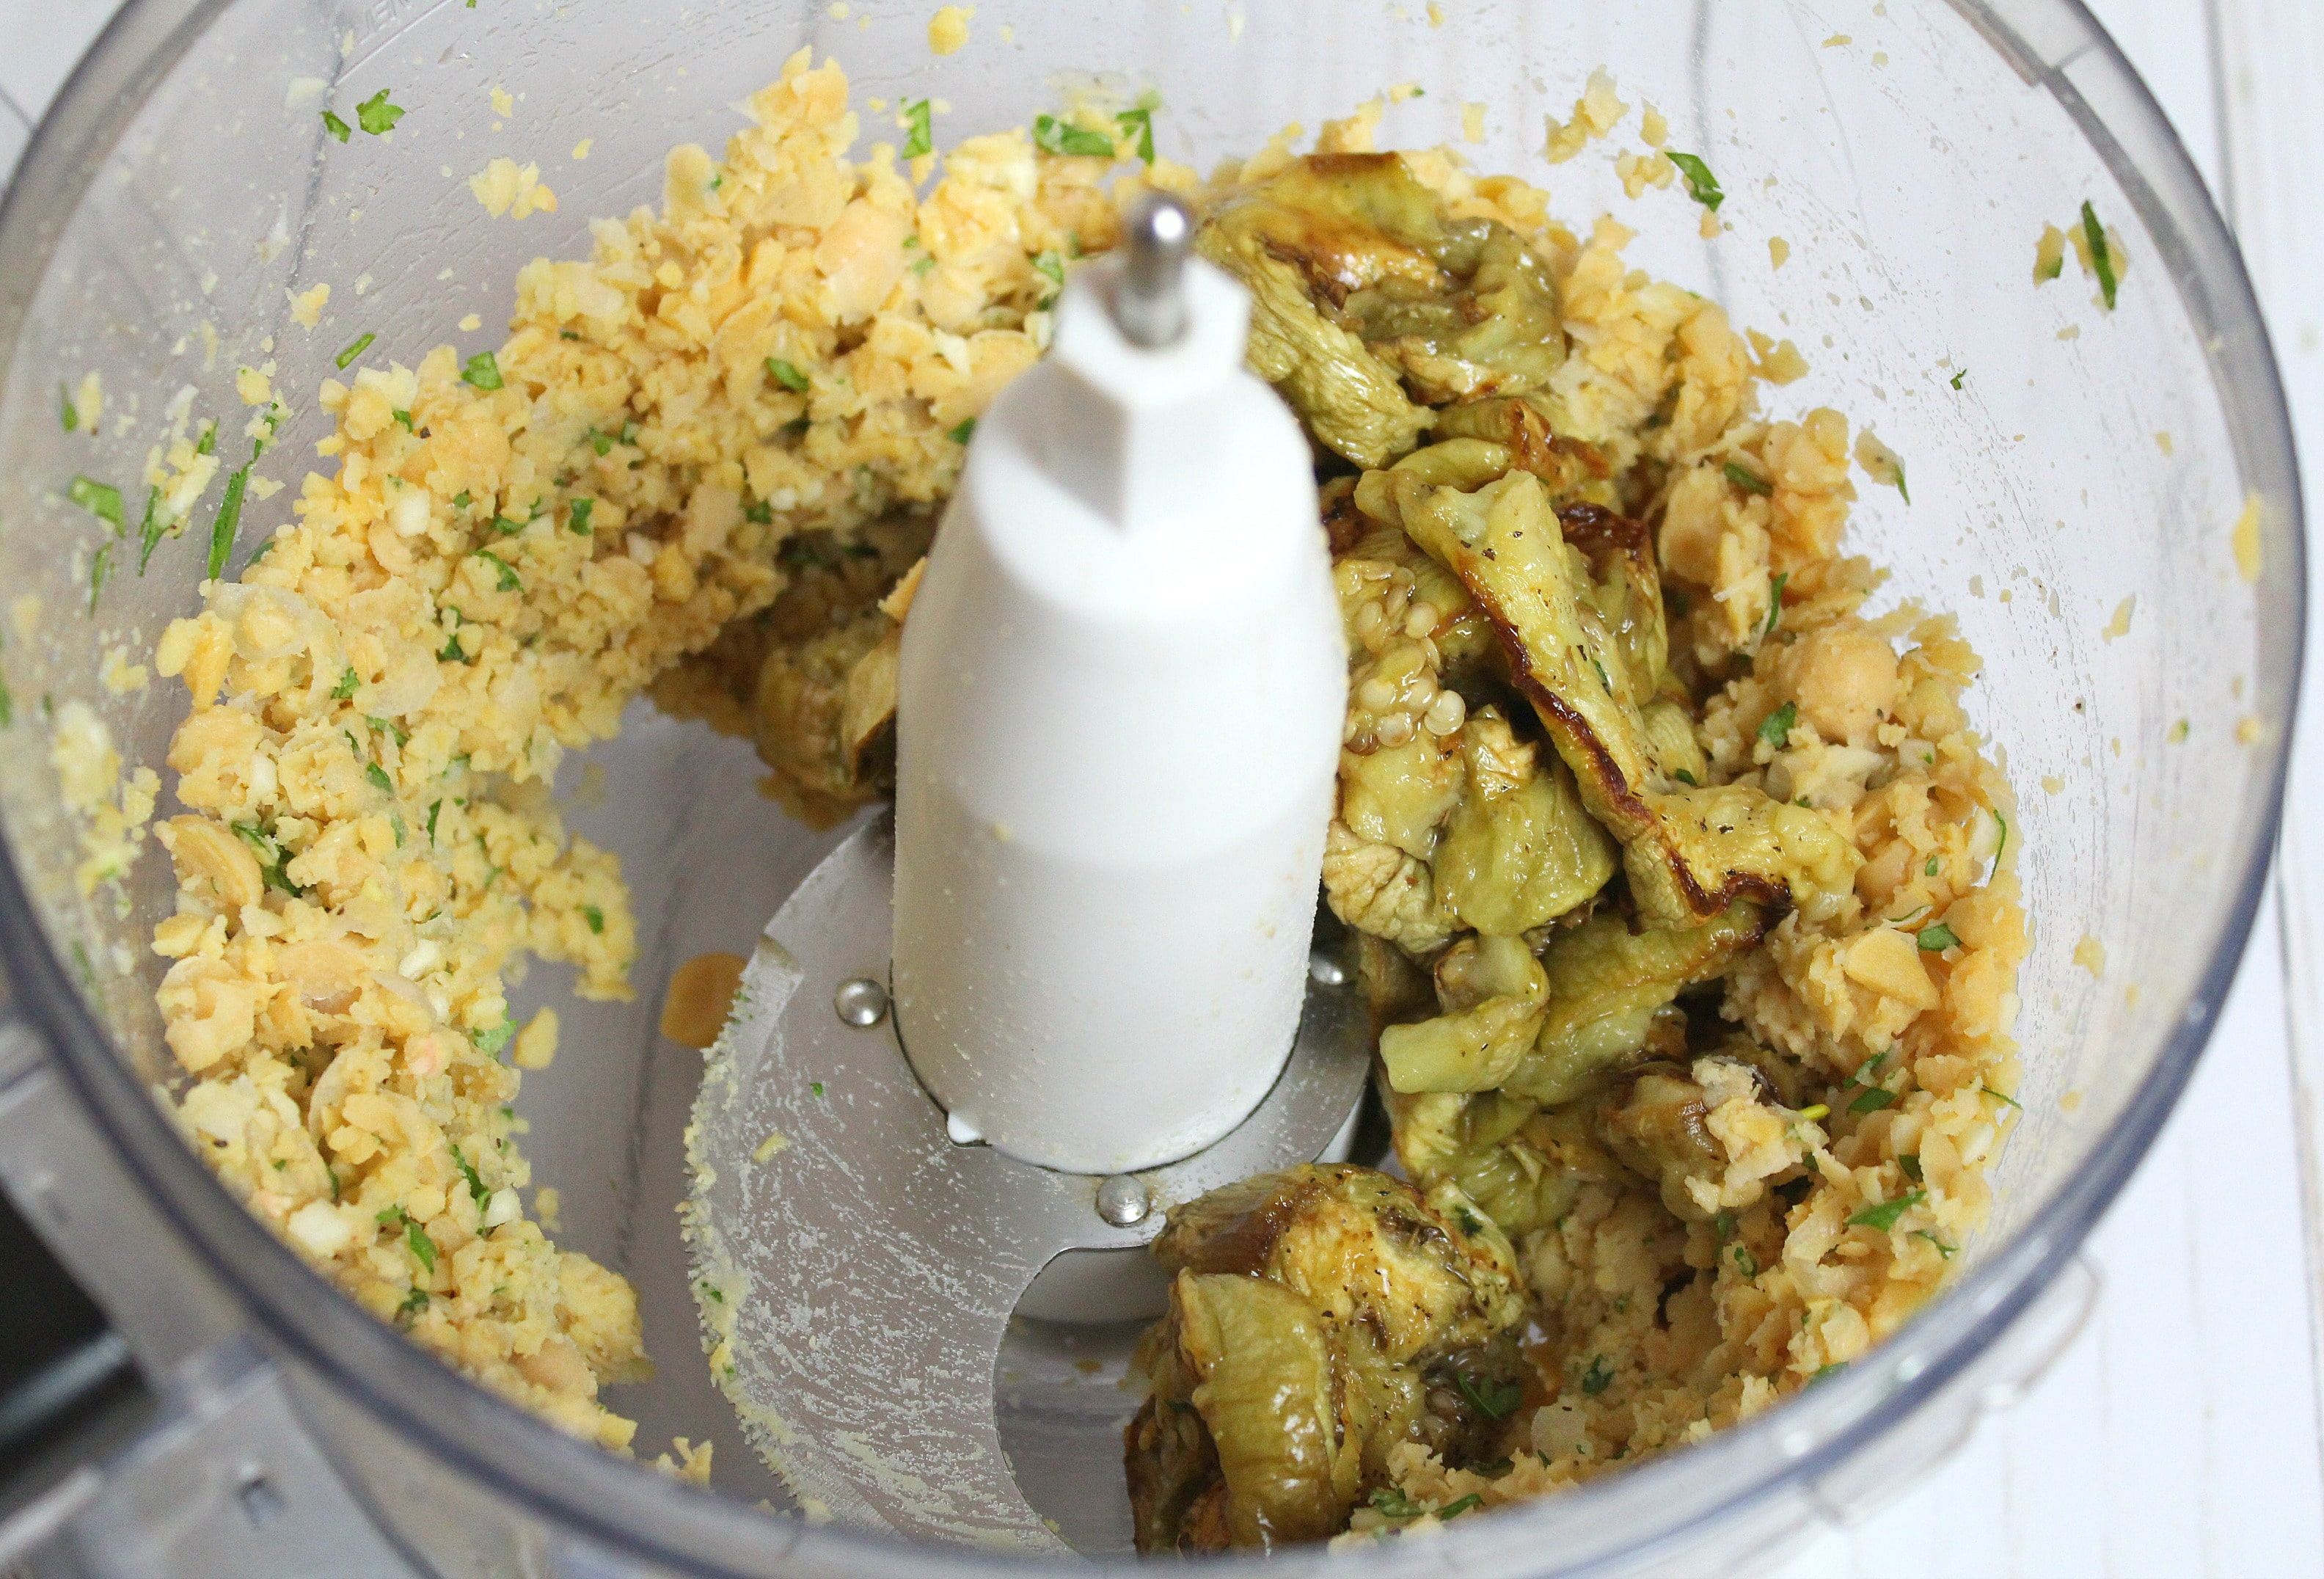 Add eggplant to food processor and blend for a few seconds.